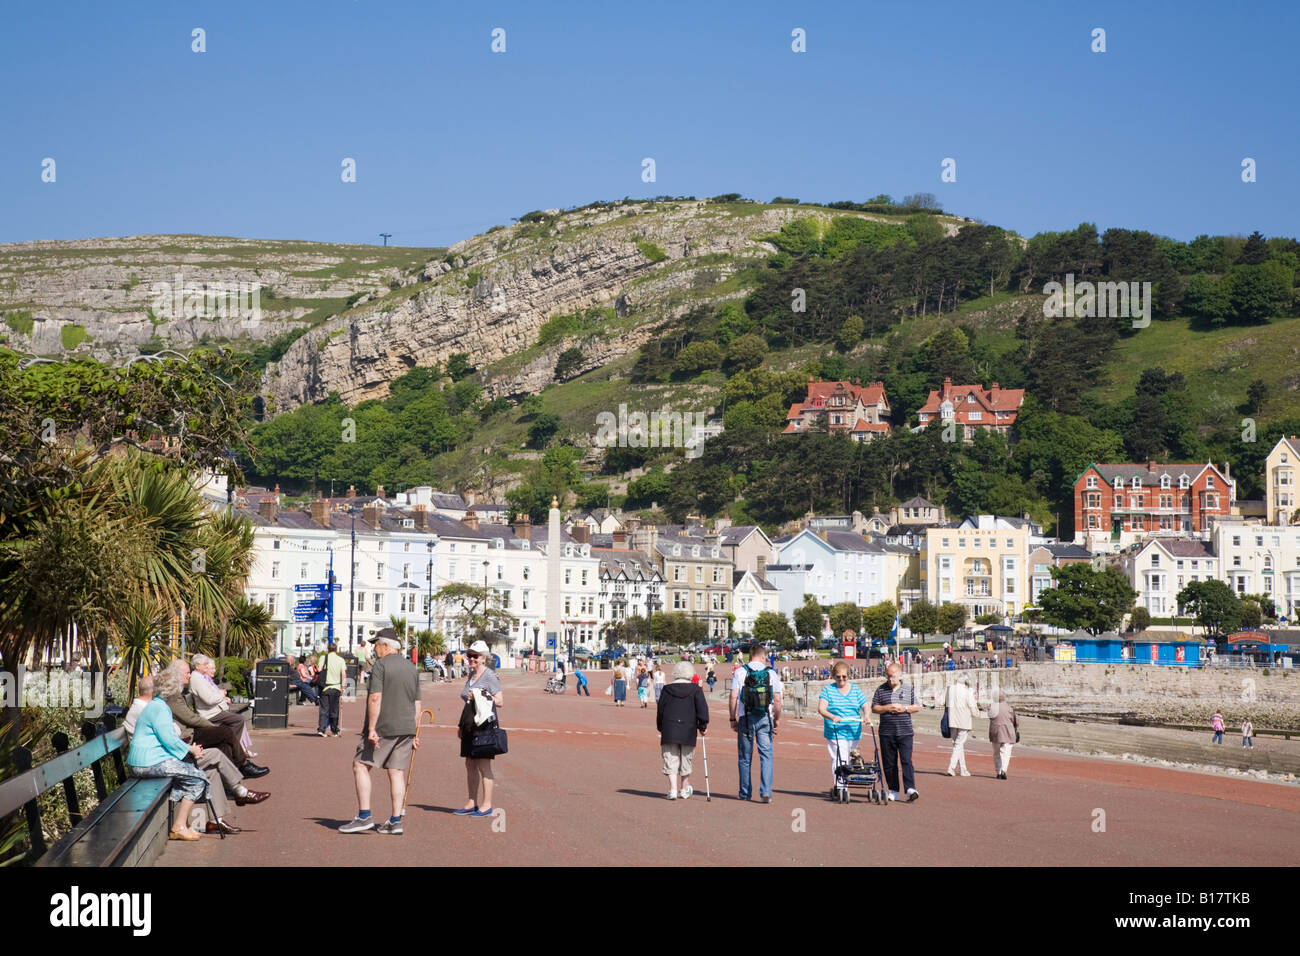 People strolling on North Parade promenade on seafront in elegant 19th century Victorian seaside holiday resort. - Stock Image